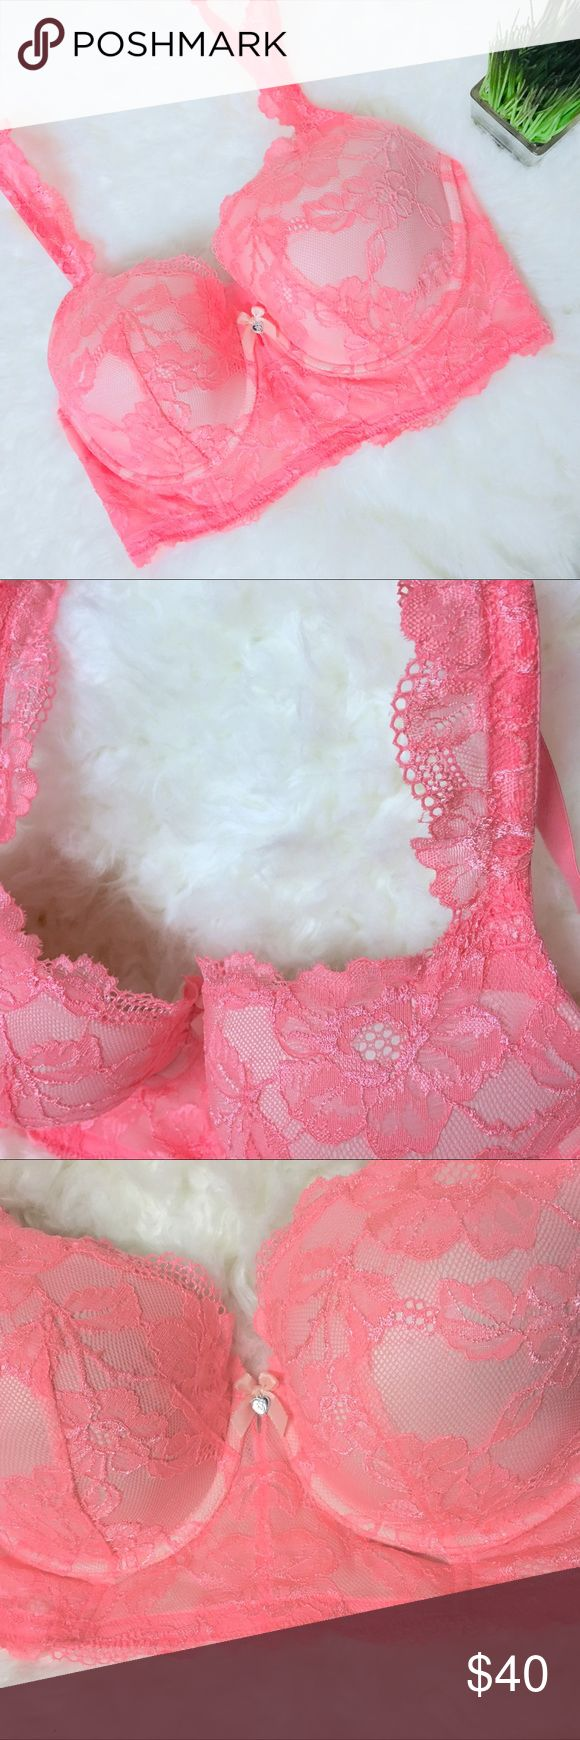 NWOT Victoria's Secret Body By Victoria Lined Demi NWOT Victoria's Secret Lined Demi 36DD Orangy/Pink color.  Thick corset type bra with scalloped lace straps and lace overlay.  I also have a Lavender one like this in my closet. Victoria's Secret Intimates & Sleepwear Bras